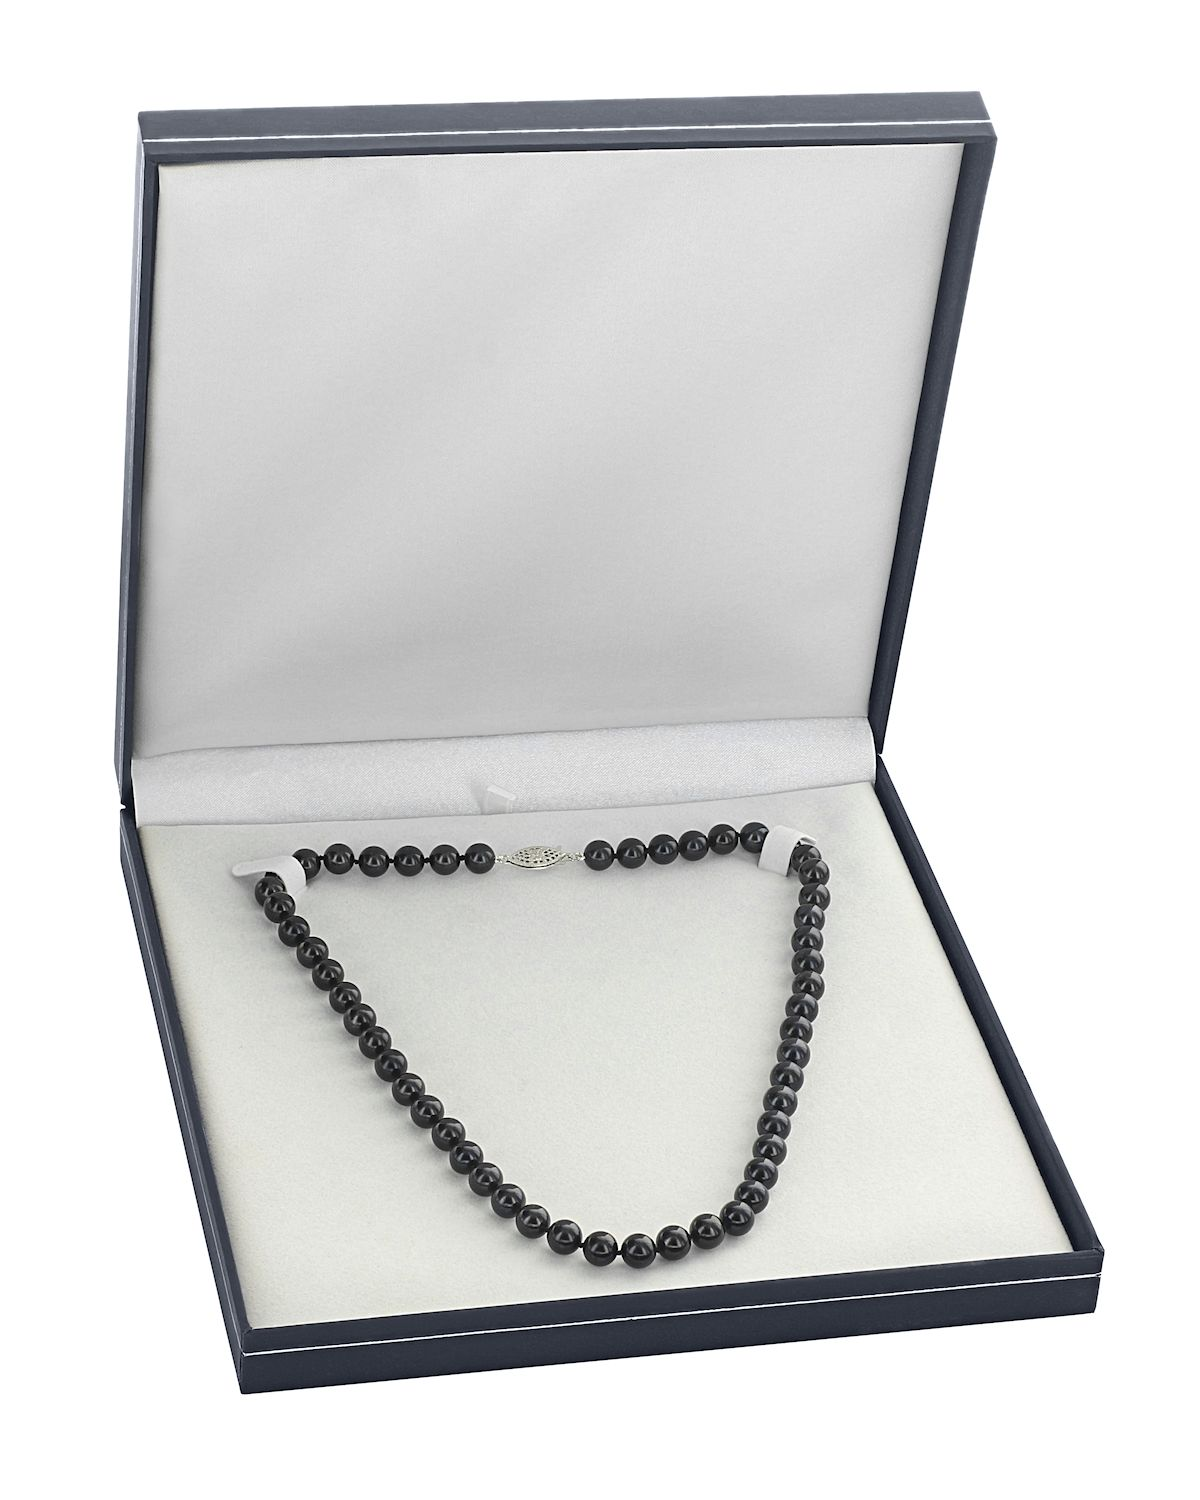 5.0-5.5mm Japanese Akoya Black Pearl Necklace - AAA Quality - Third Image